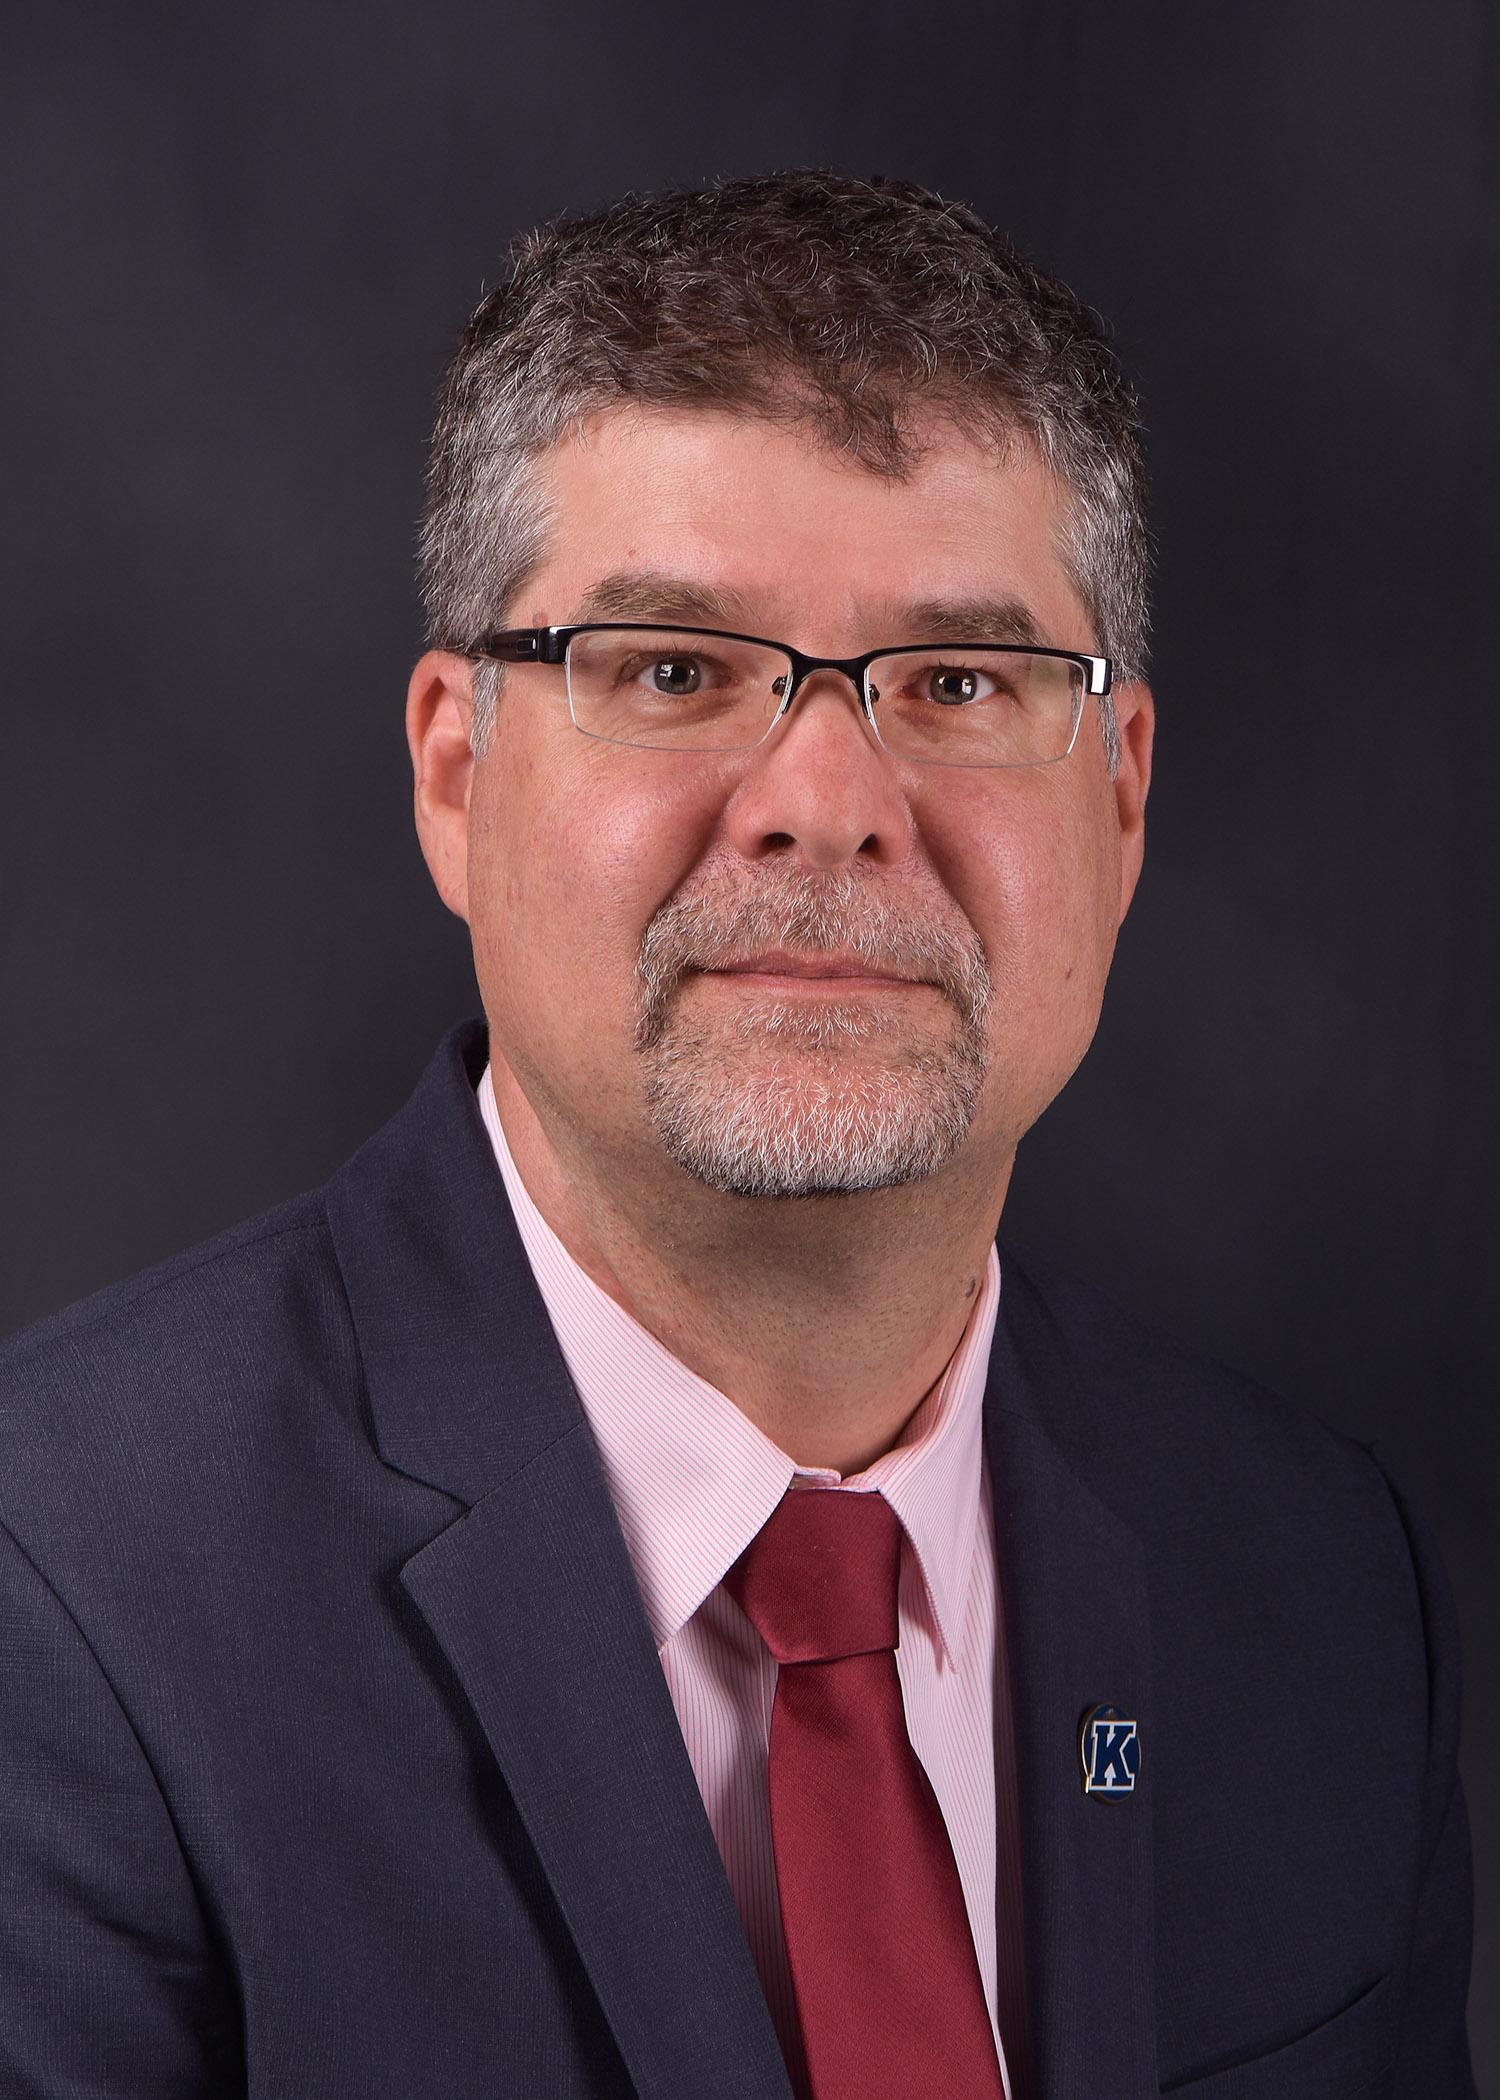 Torsten Hegmann, Ph.D., is the new director of Kent State University's Advanced Materials and Liquid Crystal Institute effective July 1, 2019.